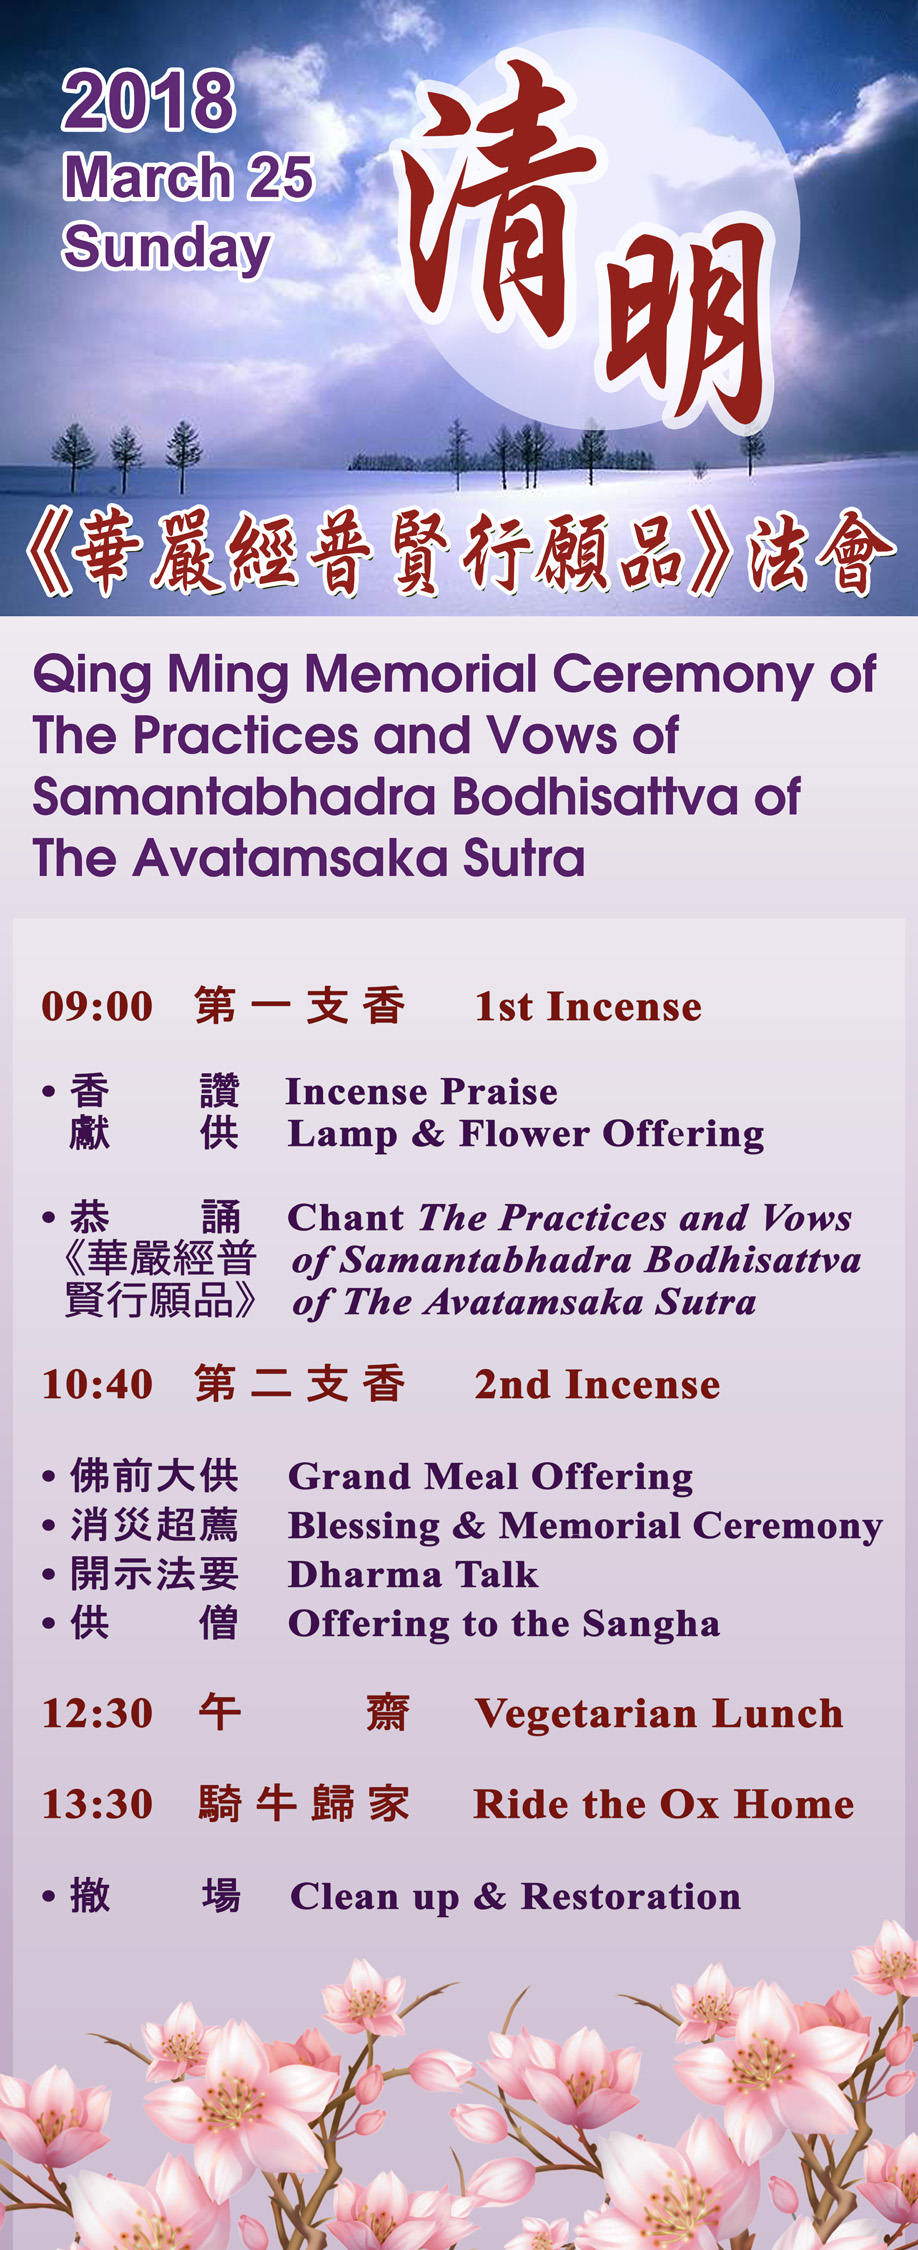 2018 Qing Ming Memorial Ceremony of The Practices and Vows of Samantabhadra Bodhisattva of The Avatamsaka Sutra